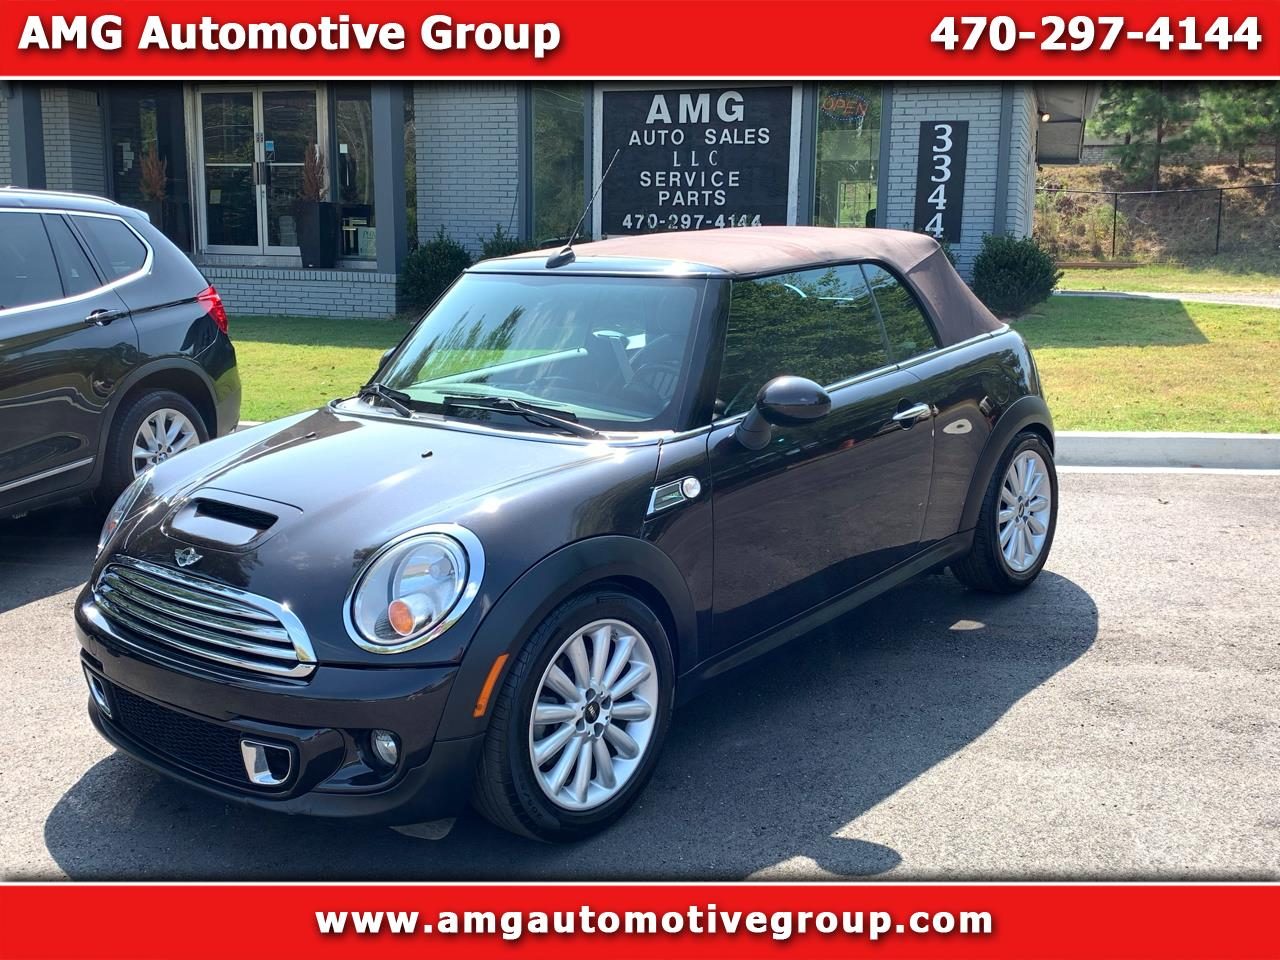 MINI Cooper Convertible 2dr S 2012